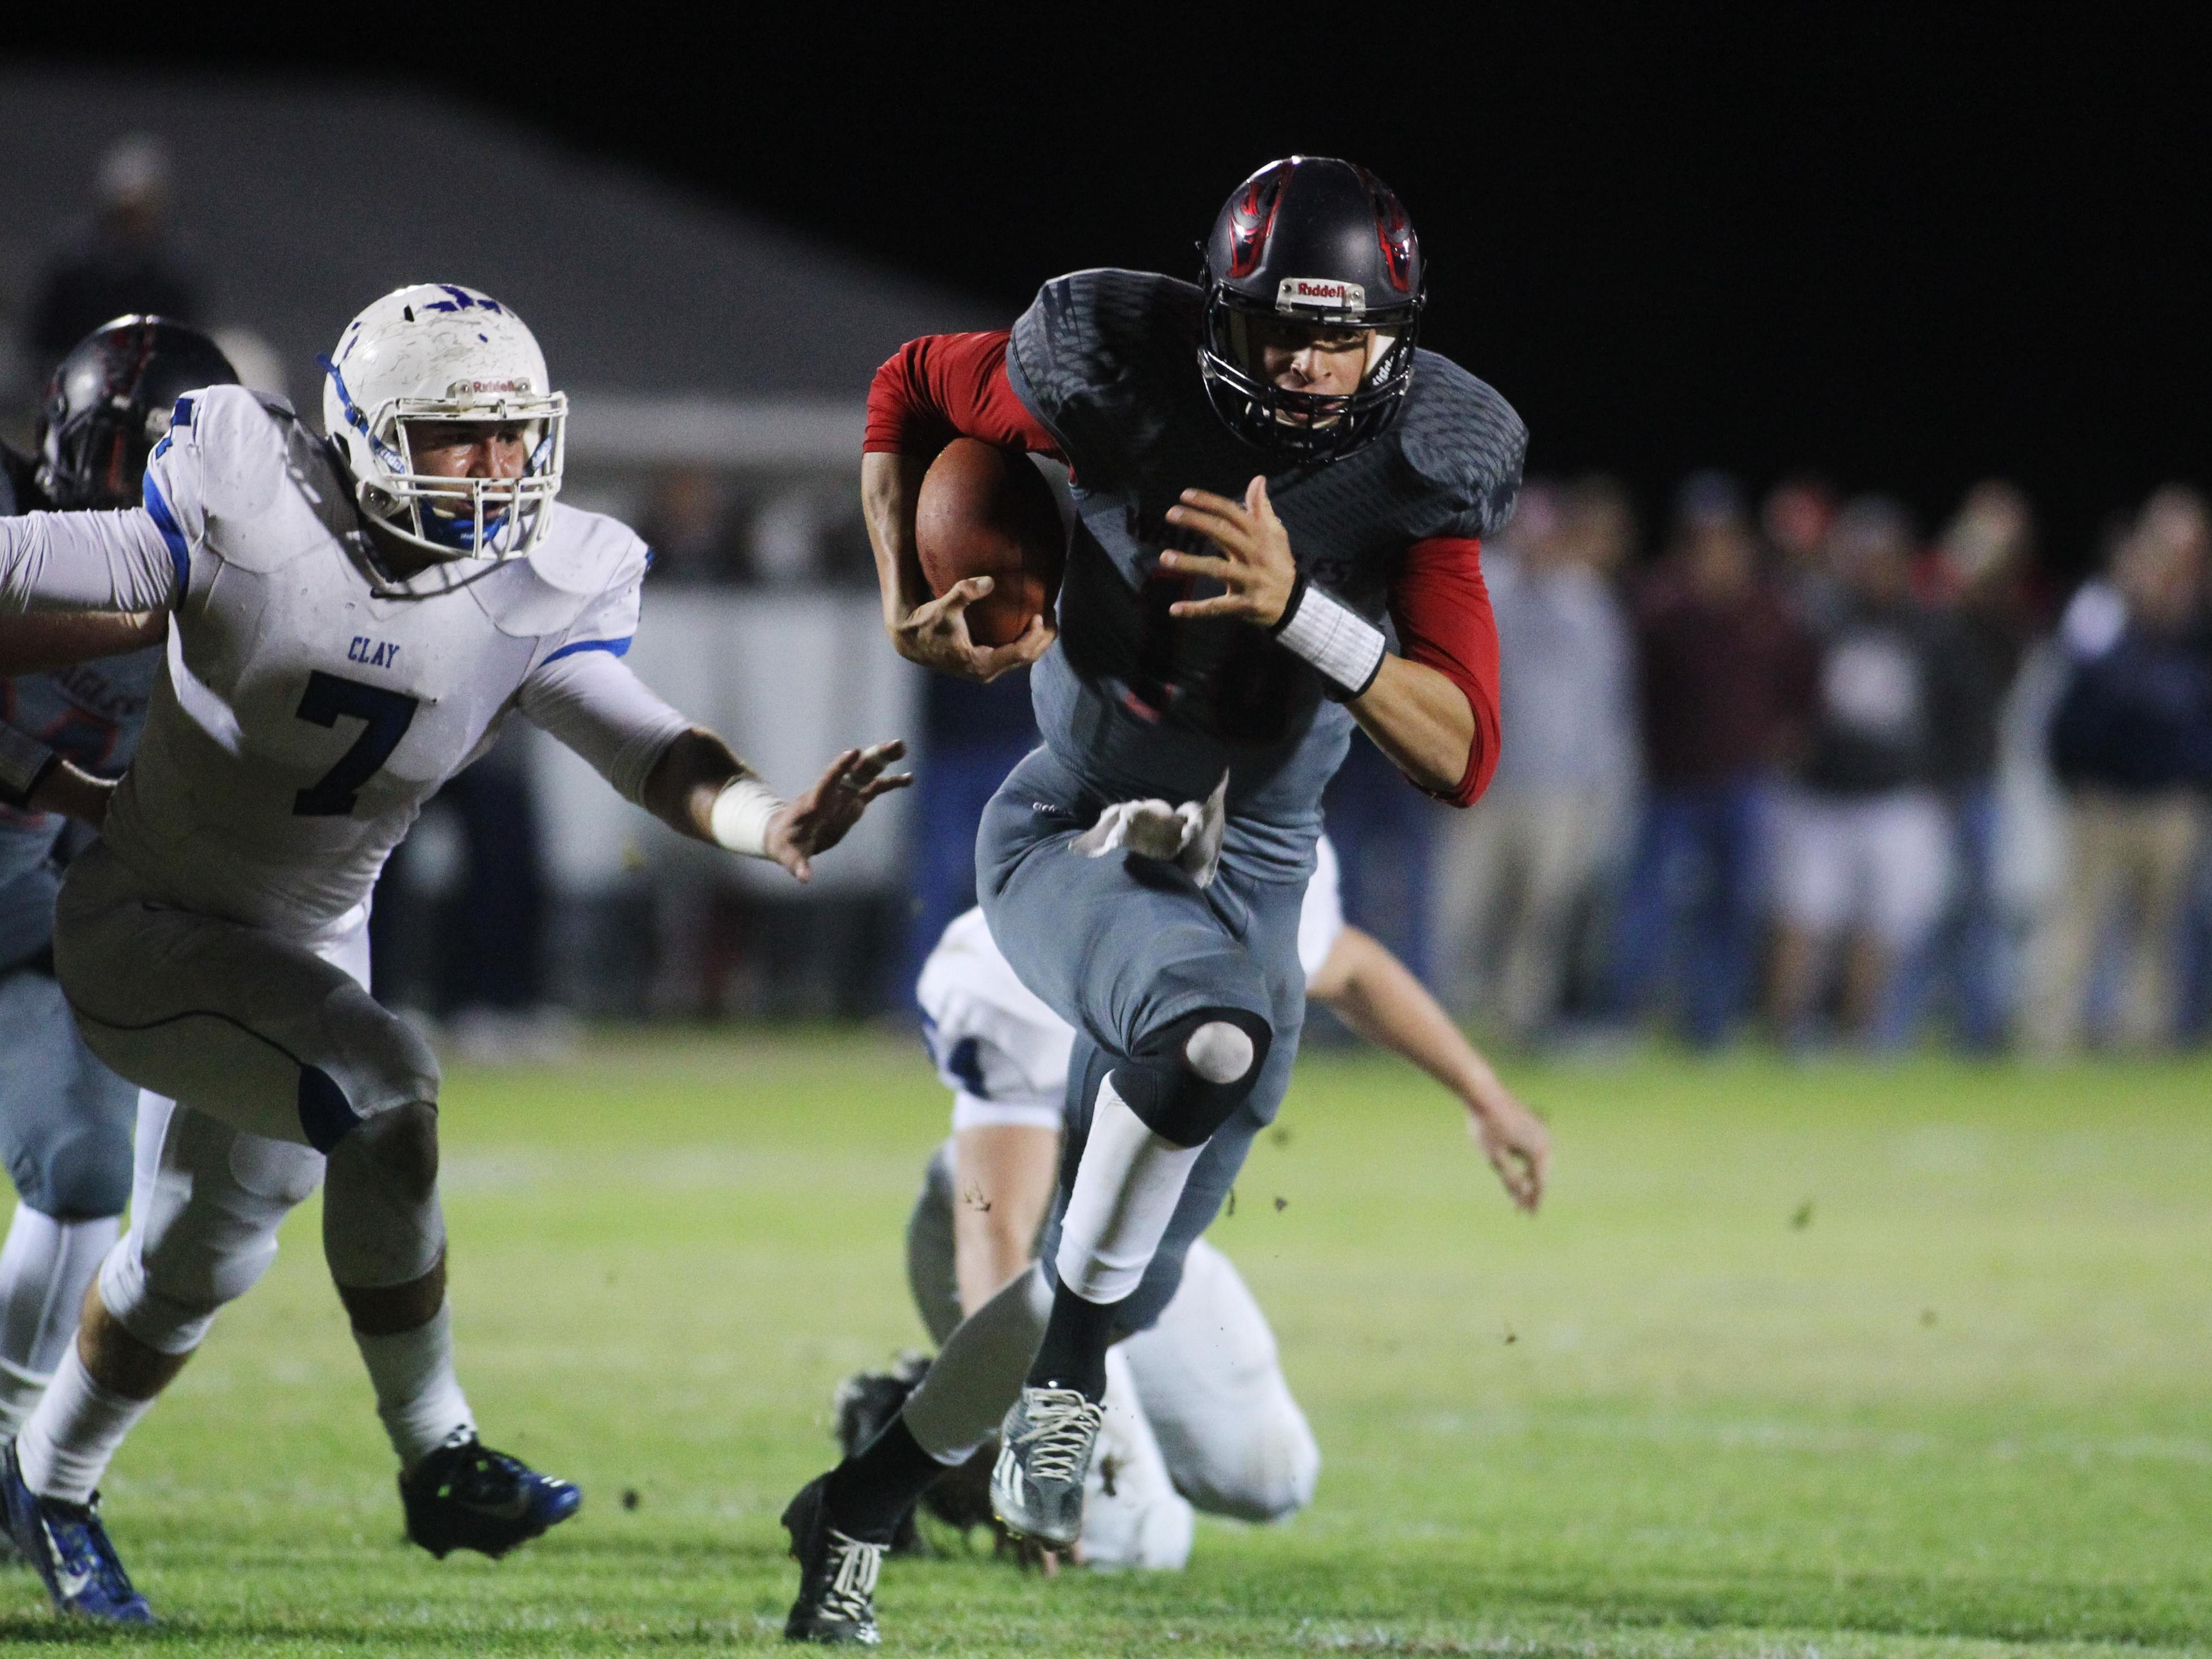 Wakulla quarterback Feleipe Franks runs with the ball in a game between Clay High and Wakulla High.